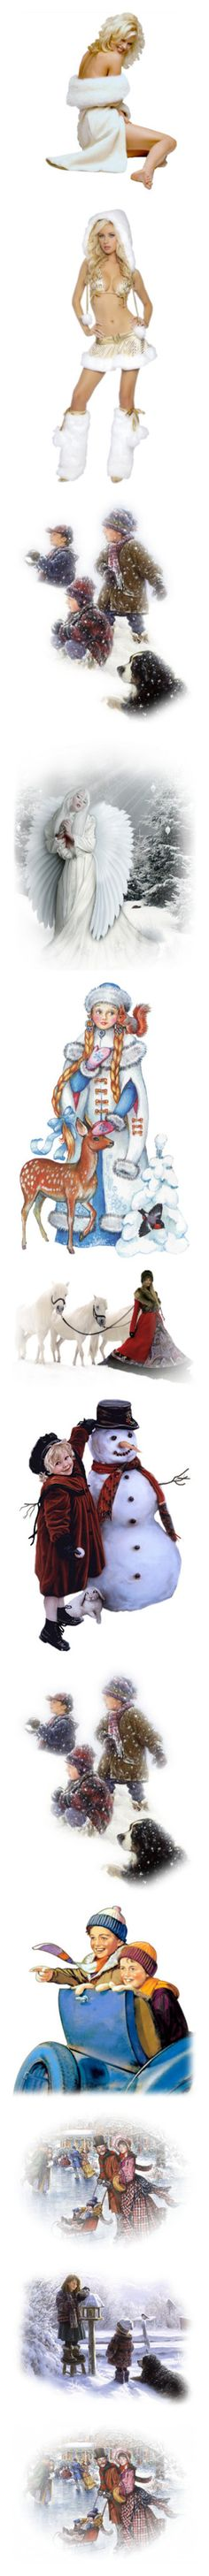 """""""Winter figures"""" by sjk921 ❤ liked on Polyvore featuring winter, christmas, children, people, tubes, backgrounds, embellishment, detail, angel and natale"""